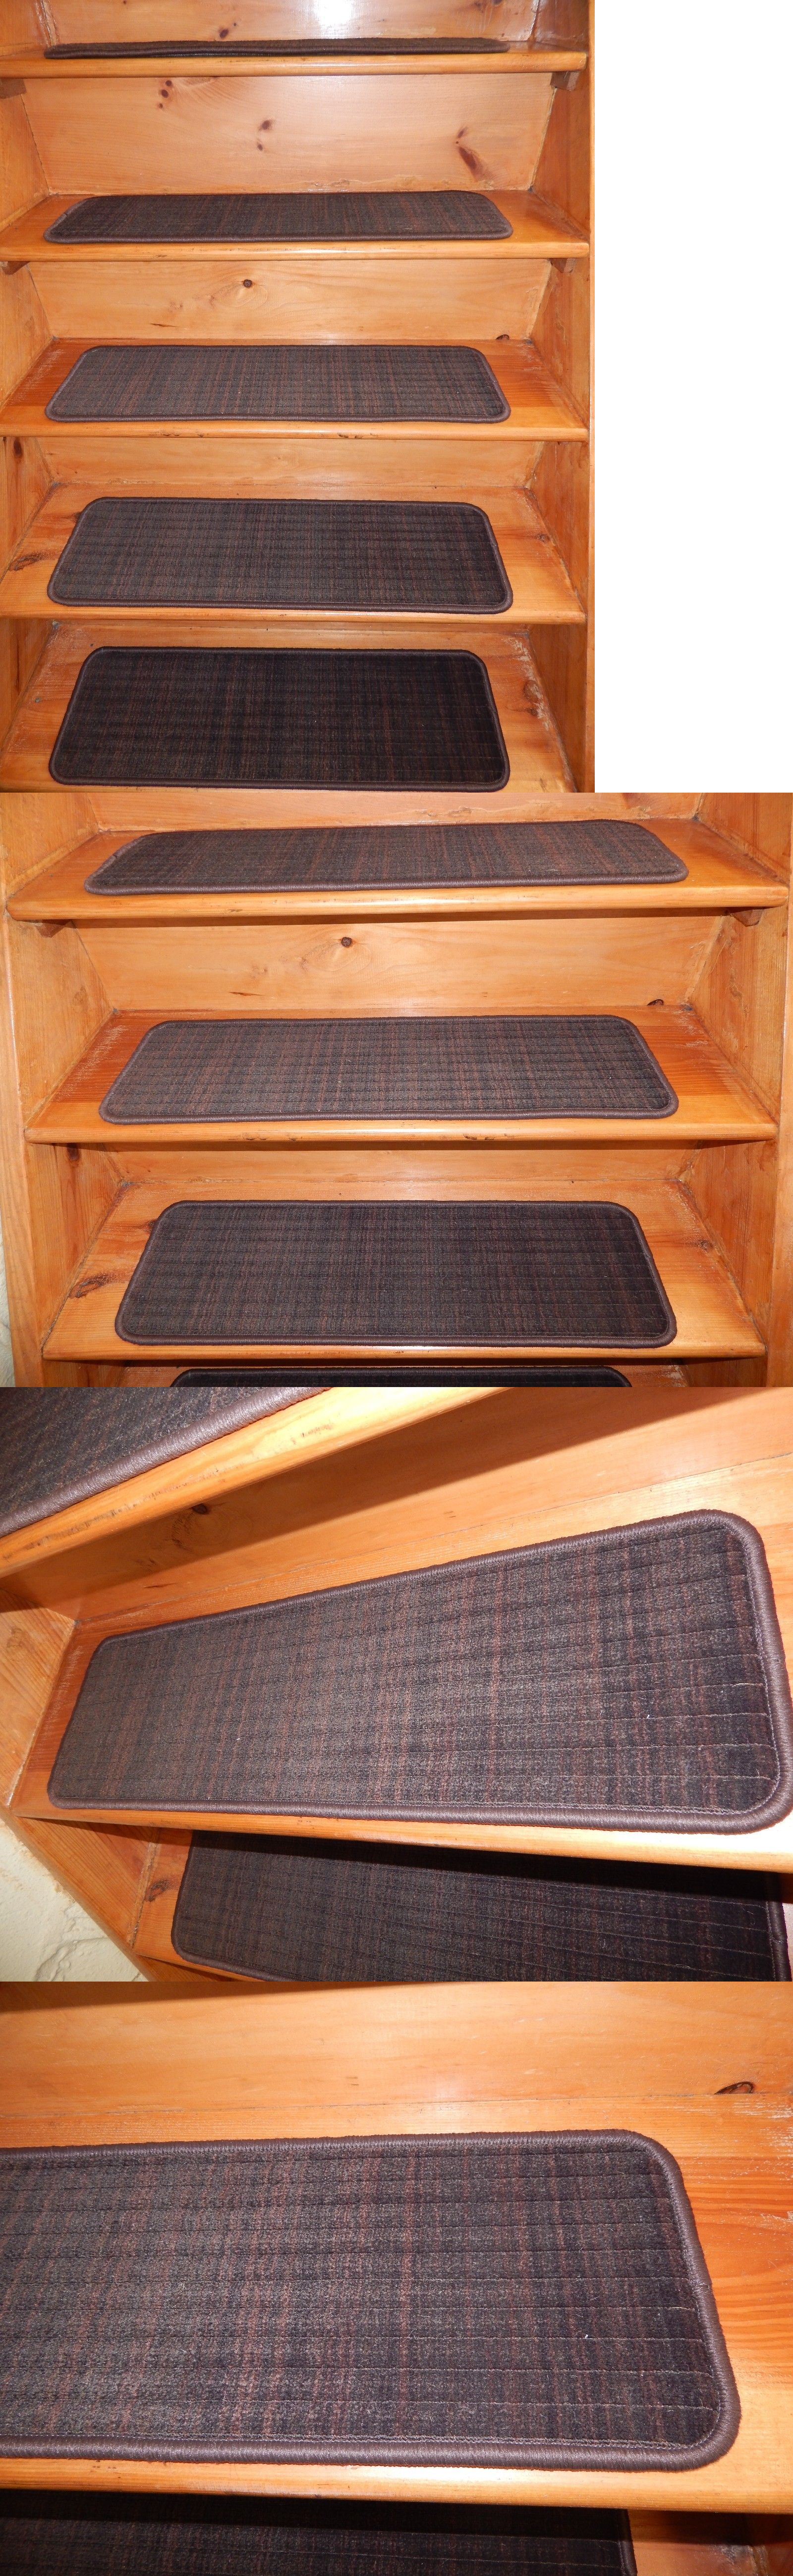 Stair Treads 175517: 14 Step 9 X 30 Landing 25 X 36 Stair Treads Staircase